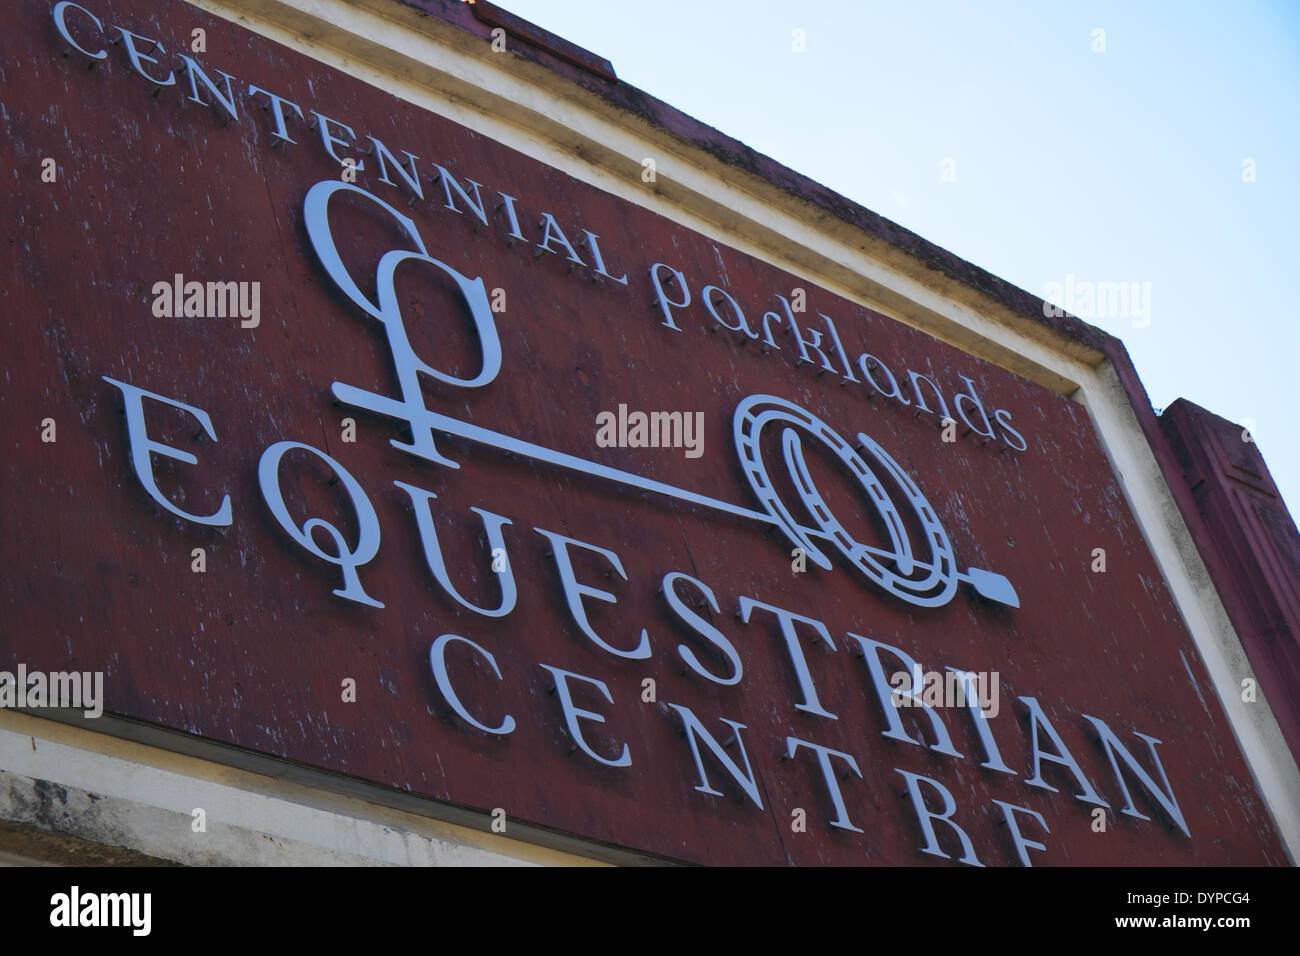 centennial park equestrian centre and horse stables, eastern suburbs,sydney - Stock Image